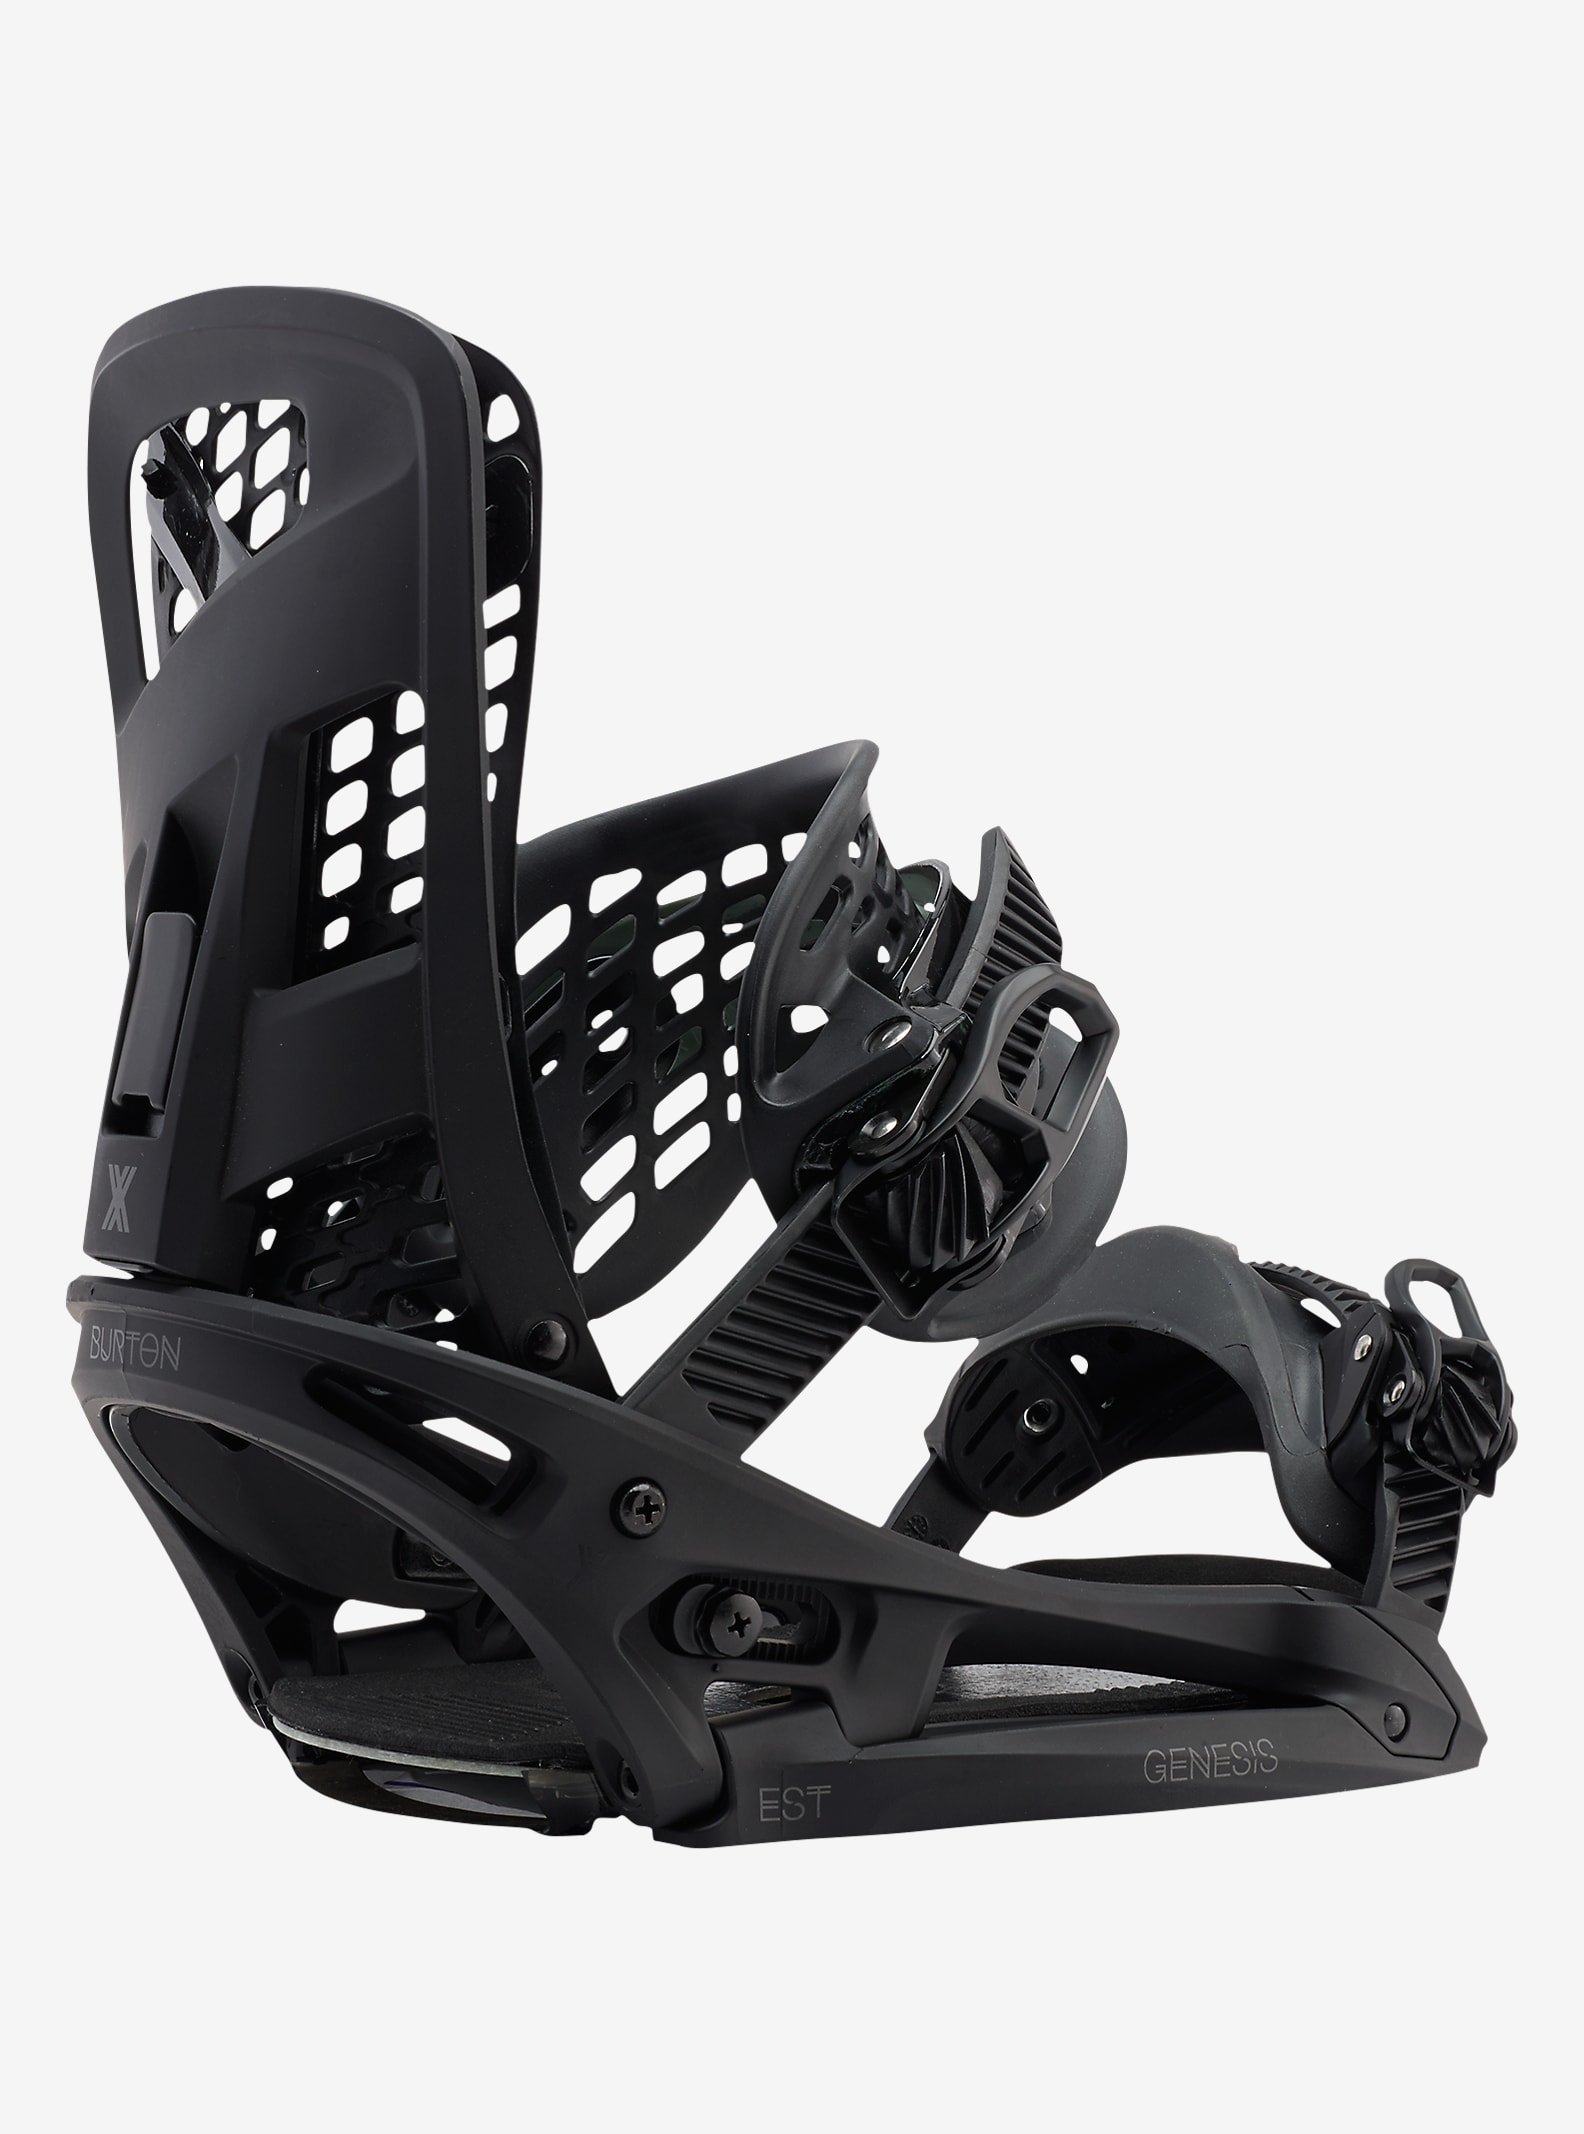 Burton Genesis X EST Snowboard Binding shown in Black